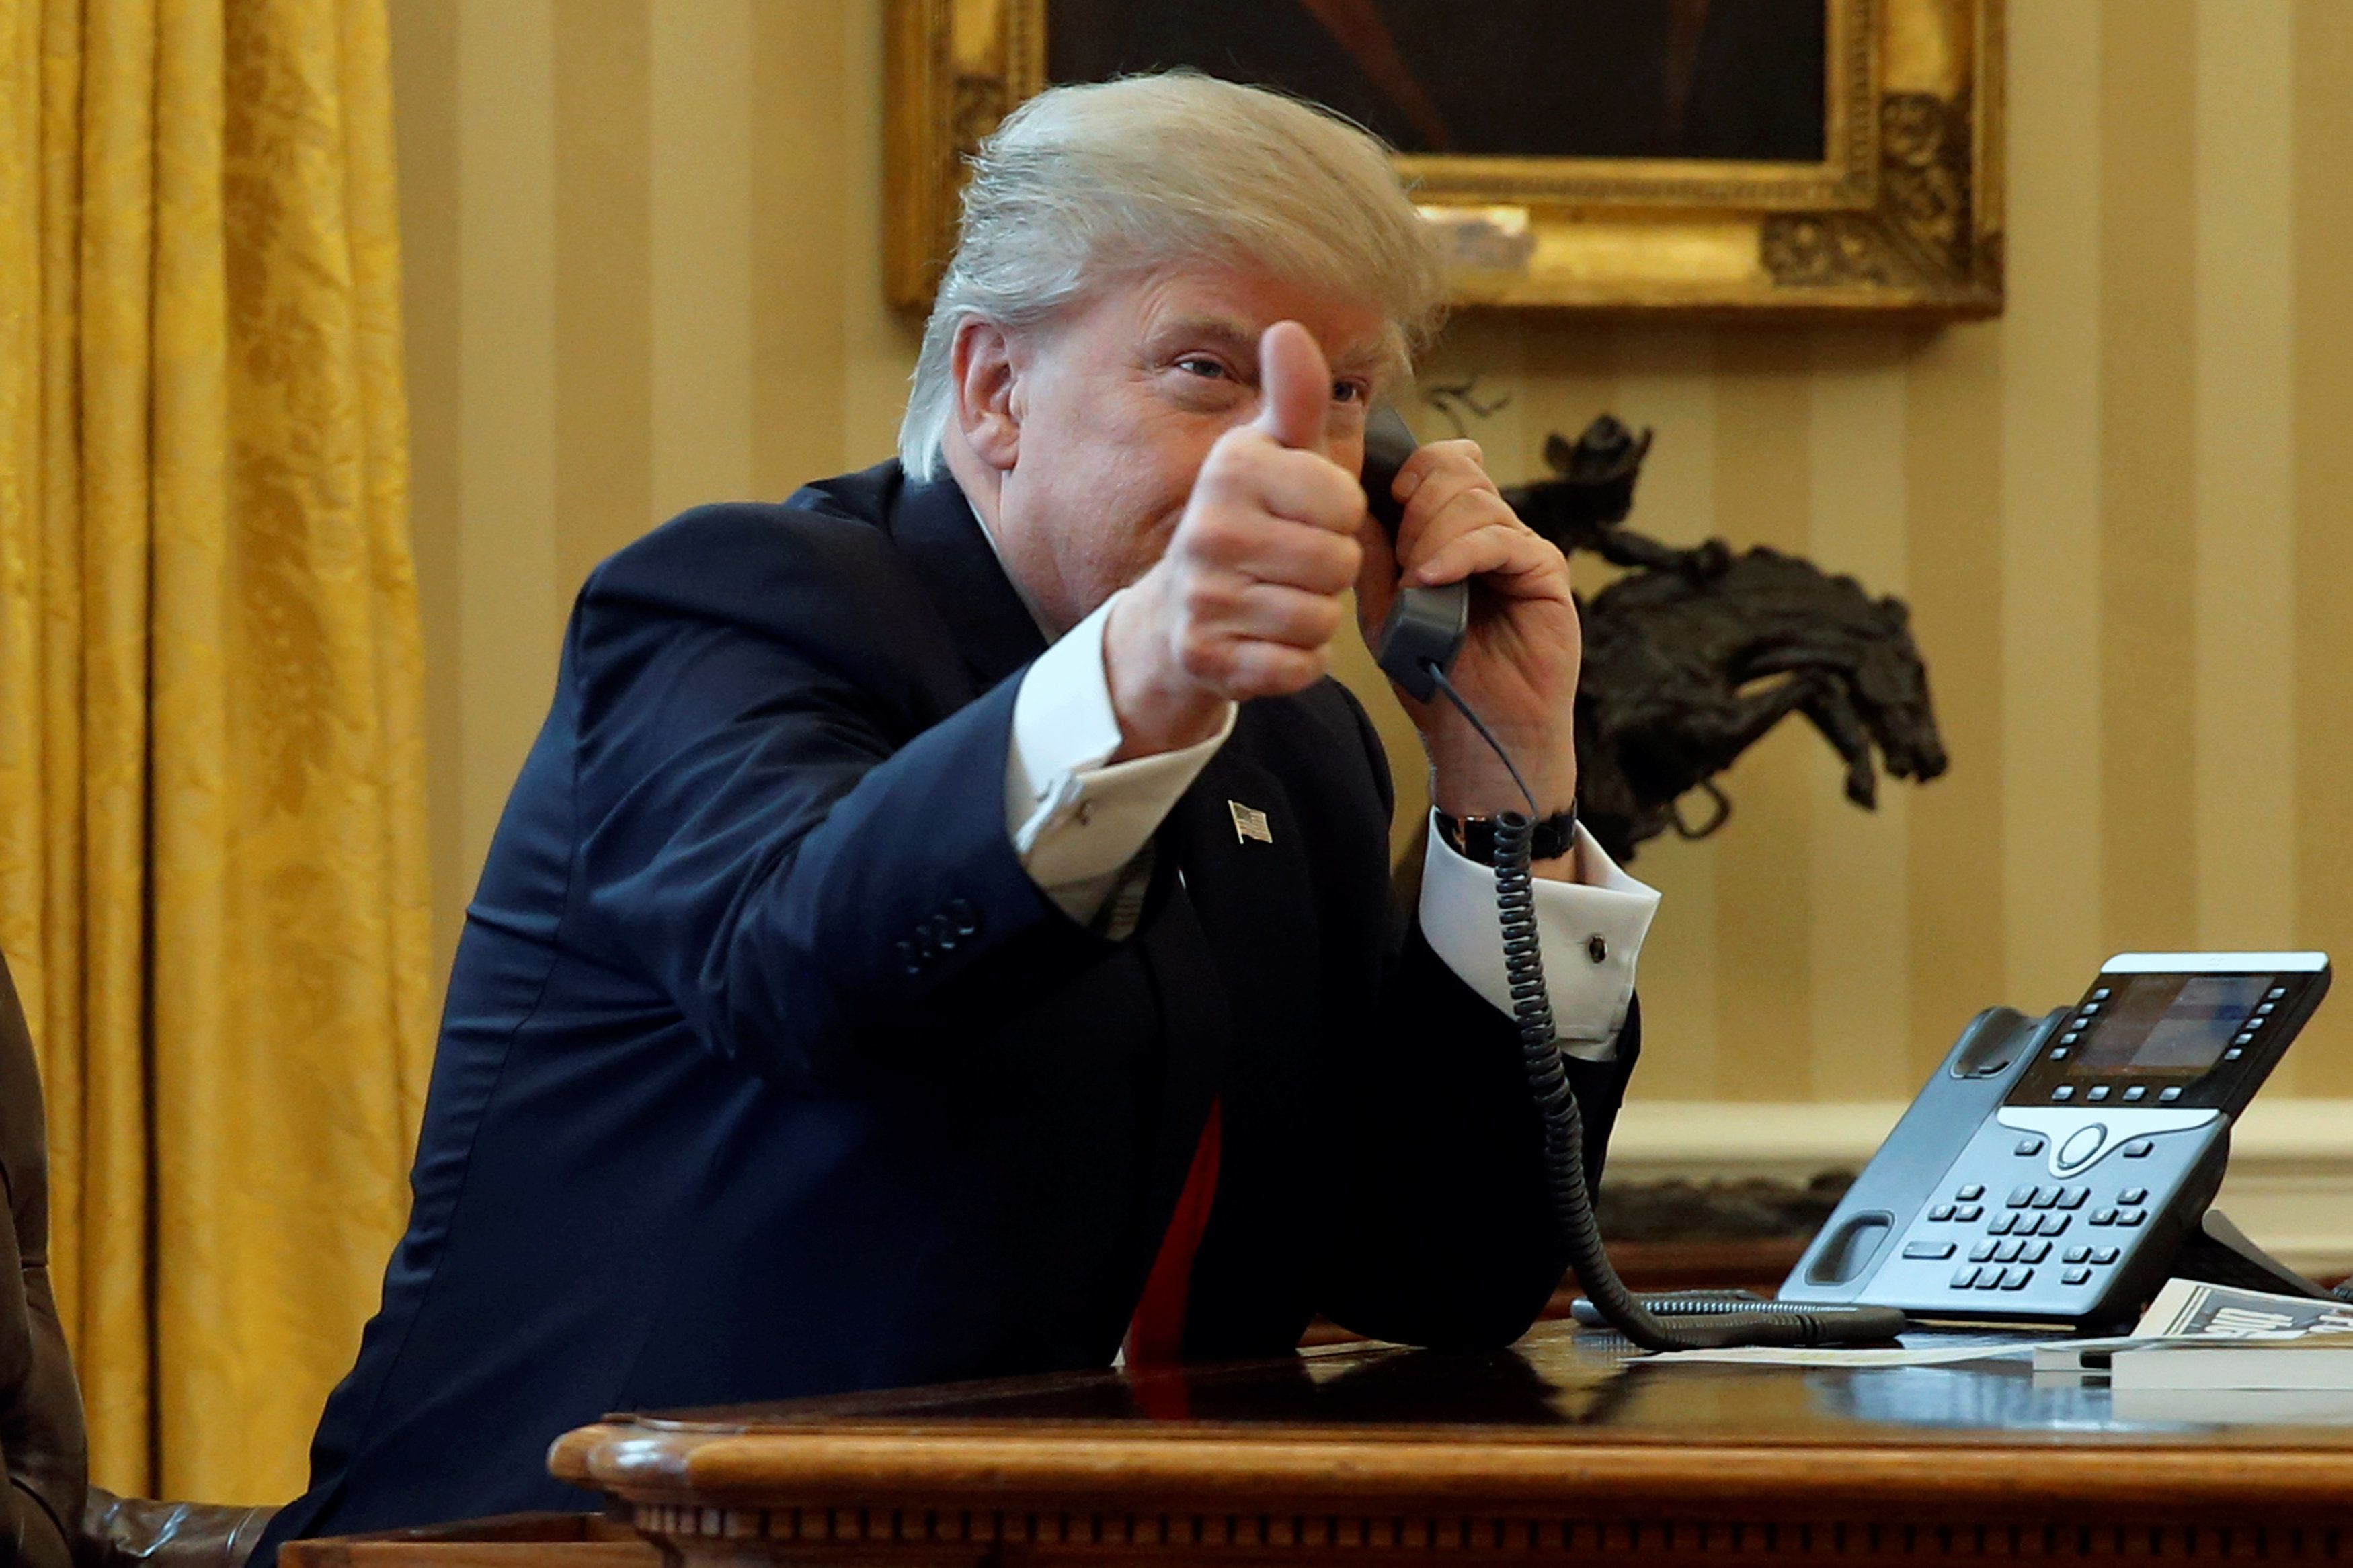 U.S. President Donald Trump gives a thumbs-up to reporters as he waits to speak by phone with the Saudi Arabia's King Salman in the Oval Office at the White House in Washington, U.S. January 29, 2017. REUTERS/Jonathan Ernst